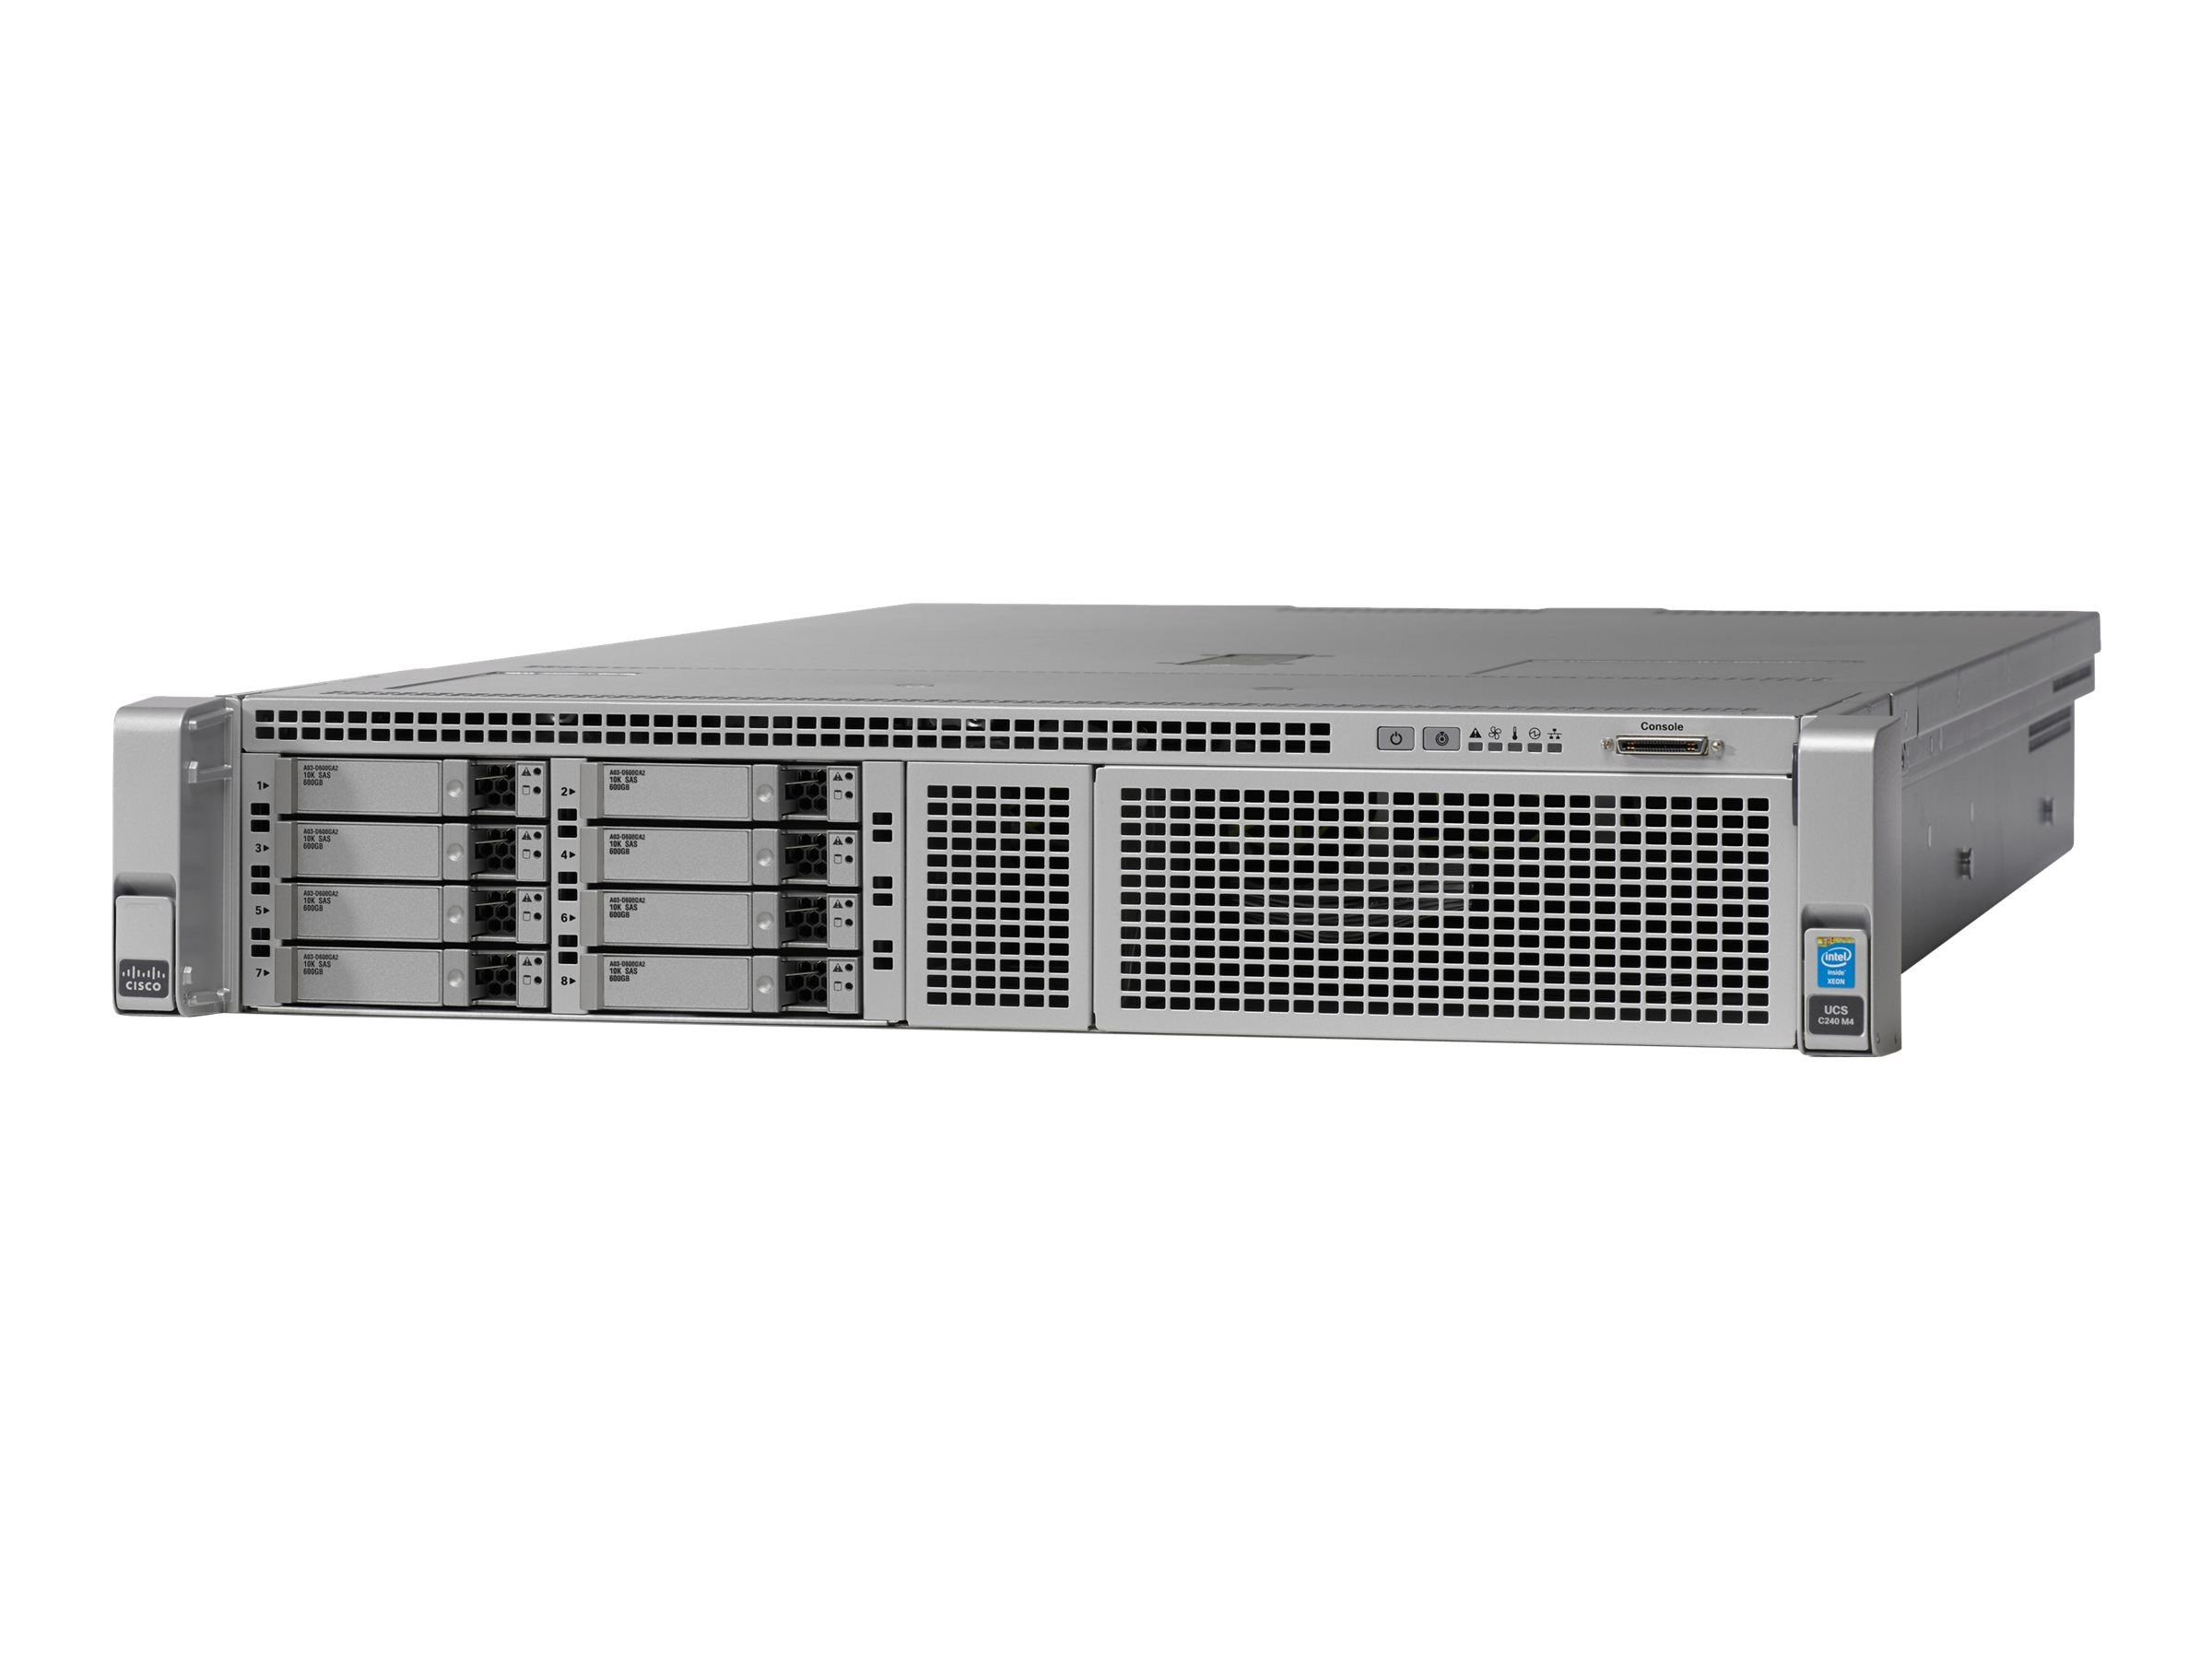 Cisco UCSC-C240-M4S Image 1